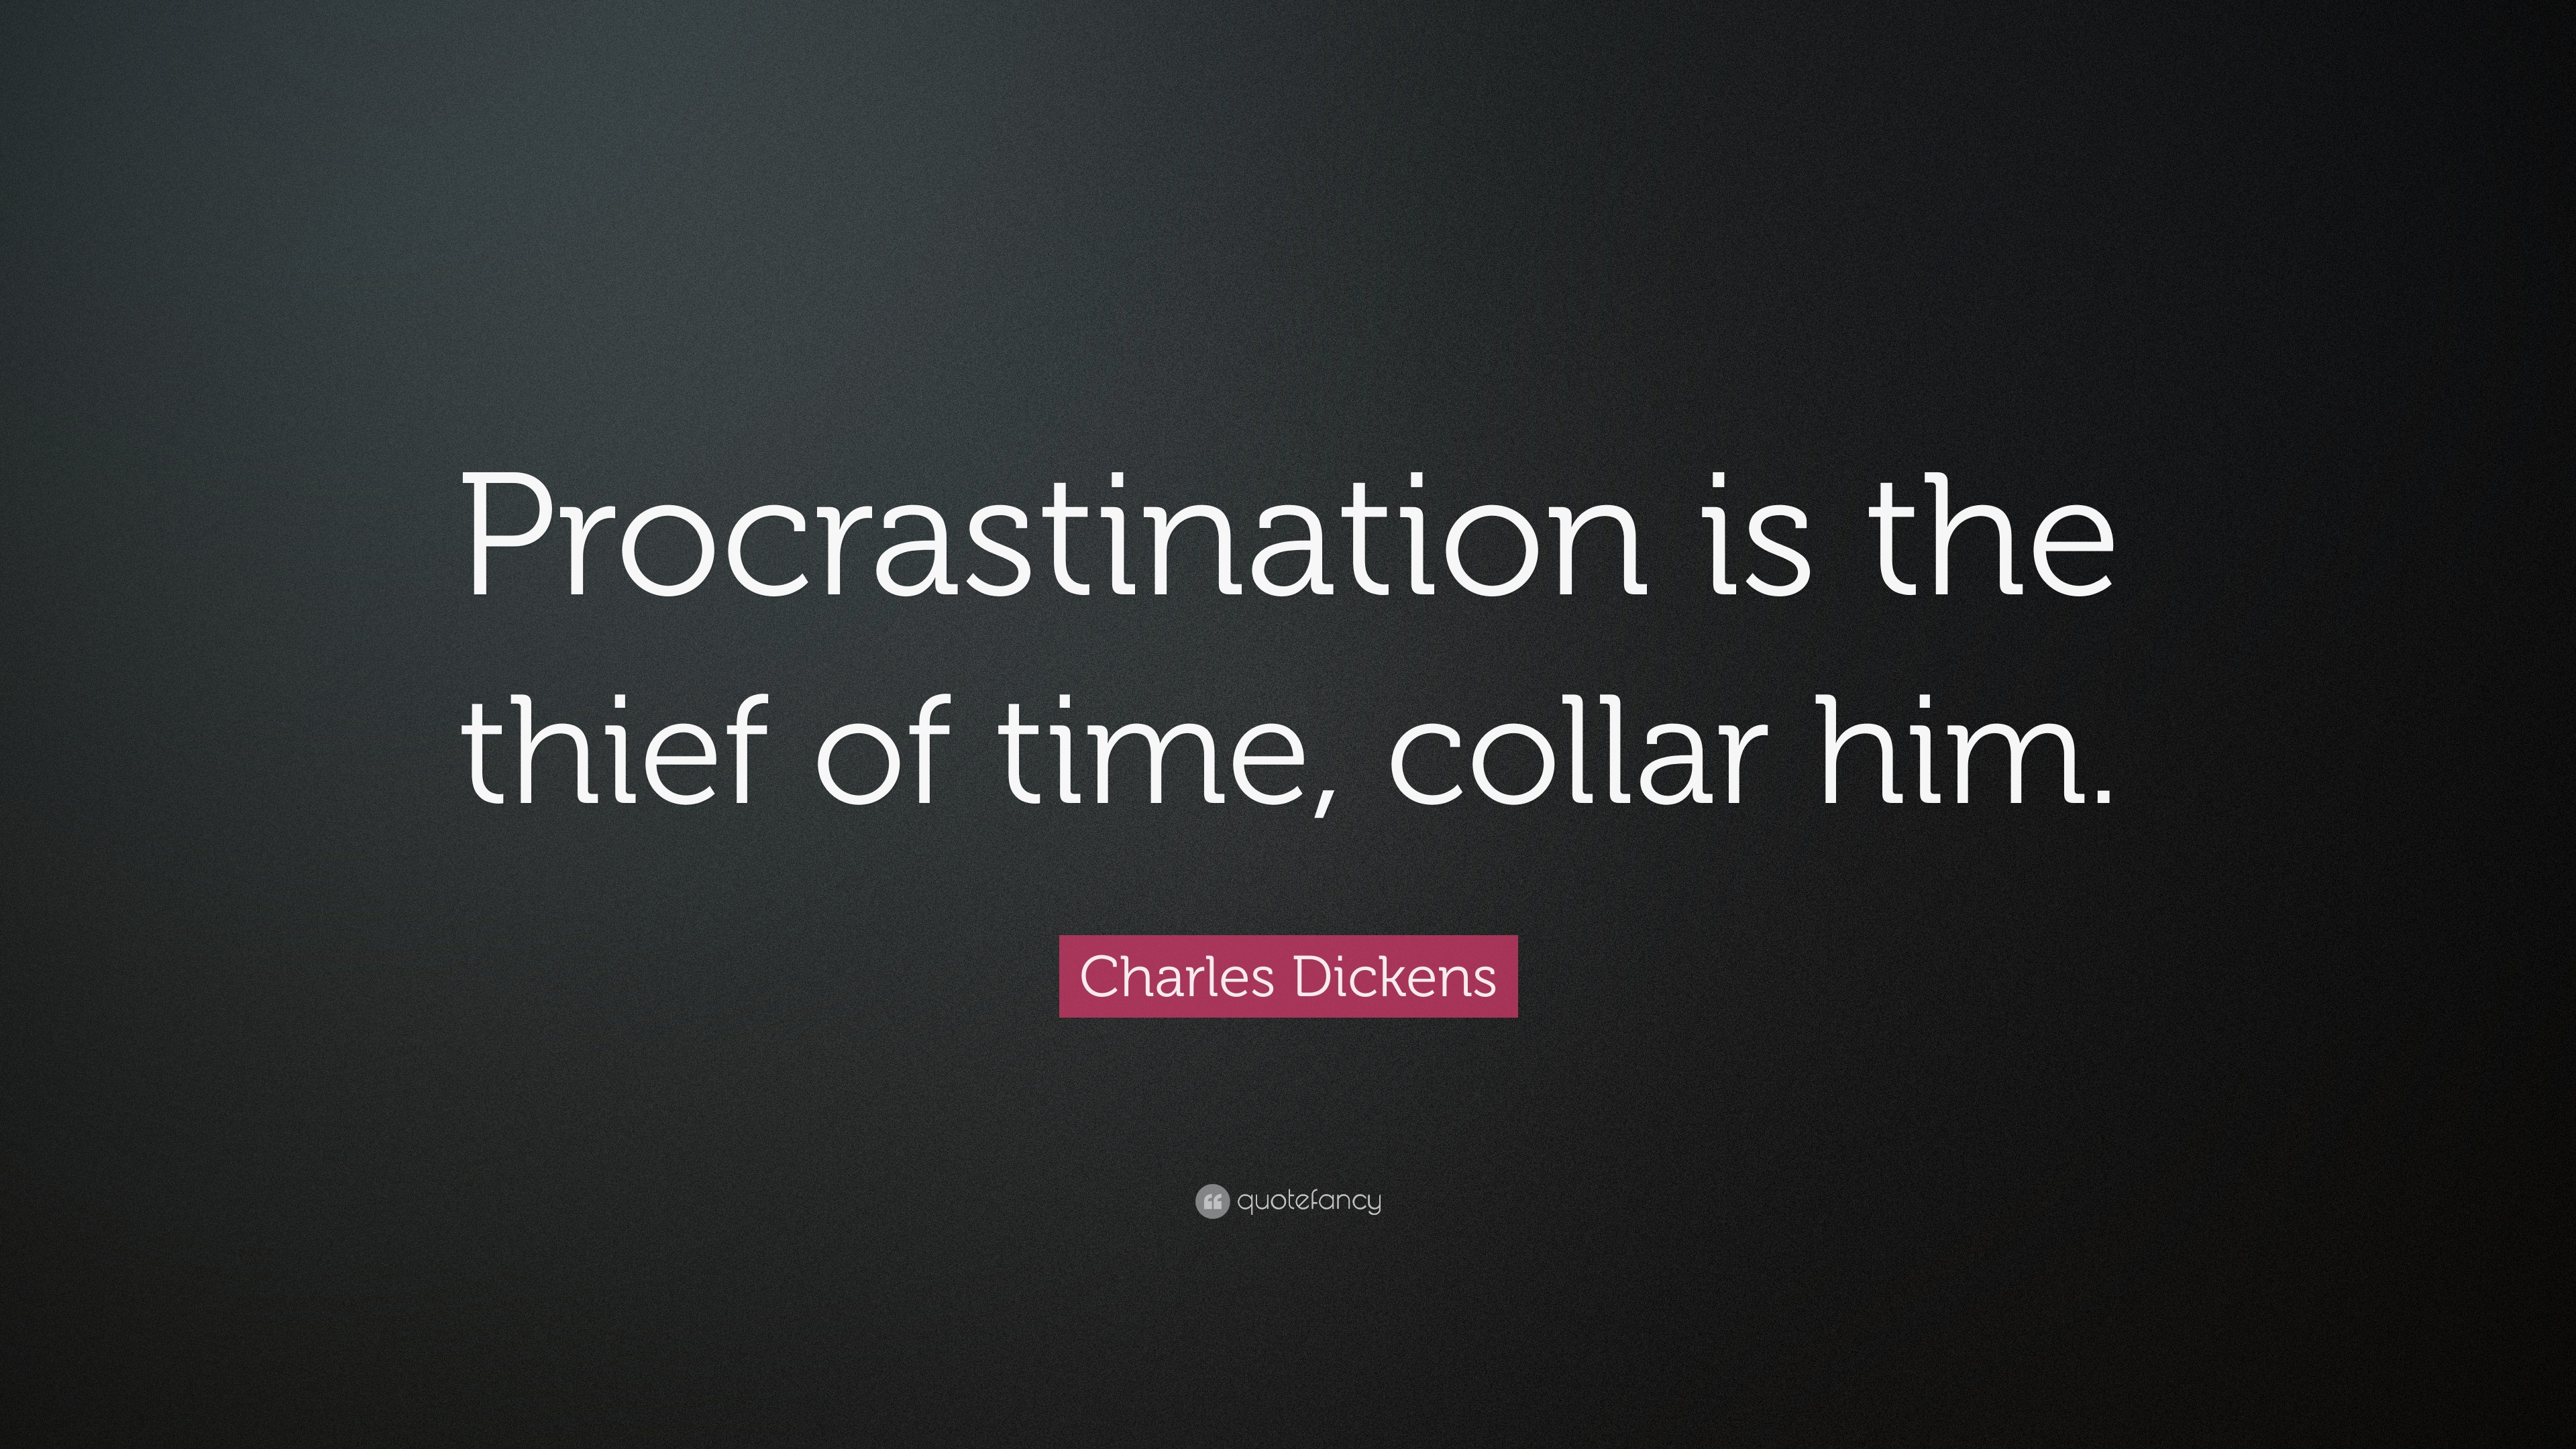 Procrastination is the thief of time, collar him. Charles Dickens